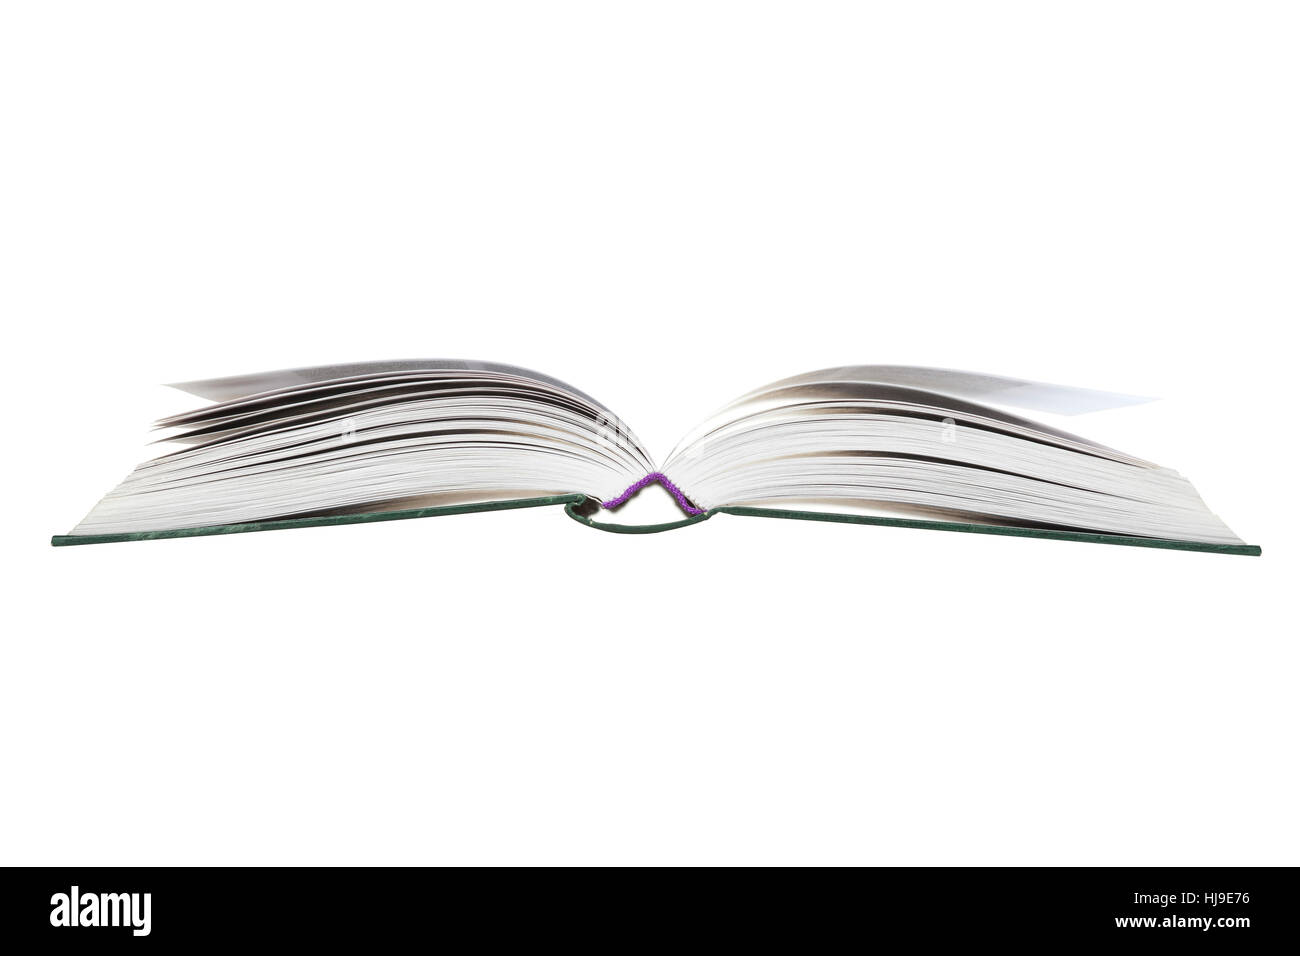 isolated, open, uncap, publication, publish, book, white, write, wrote, - Stock Image